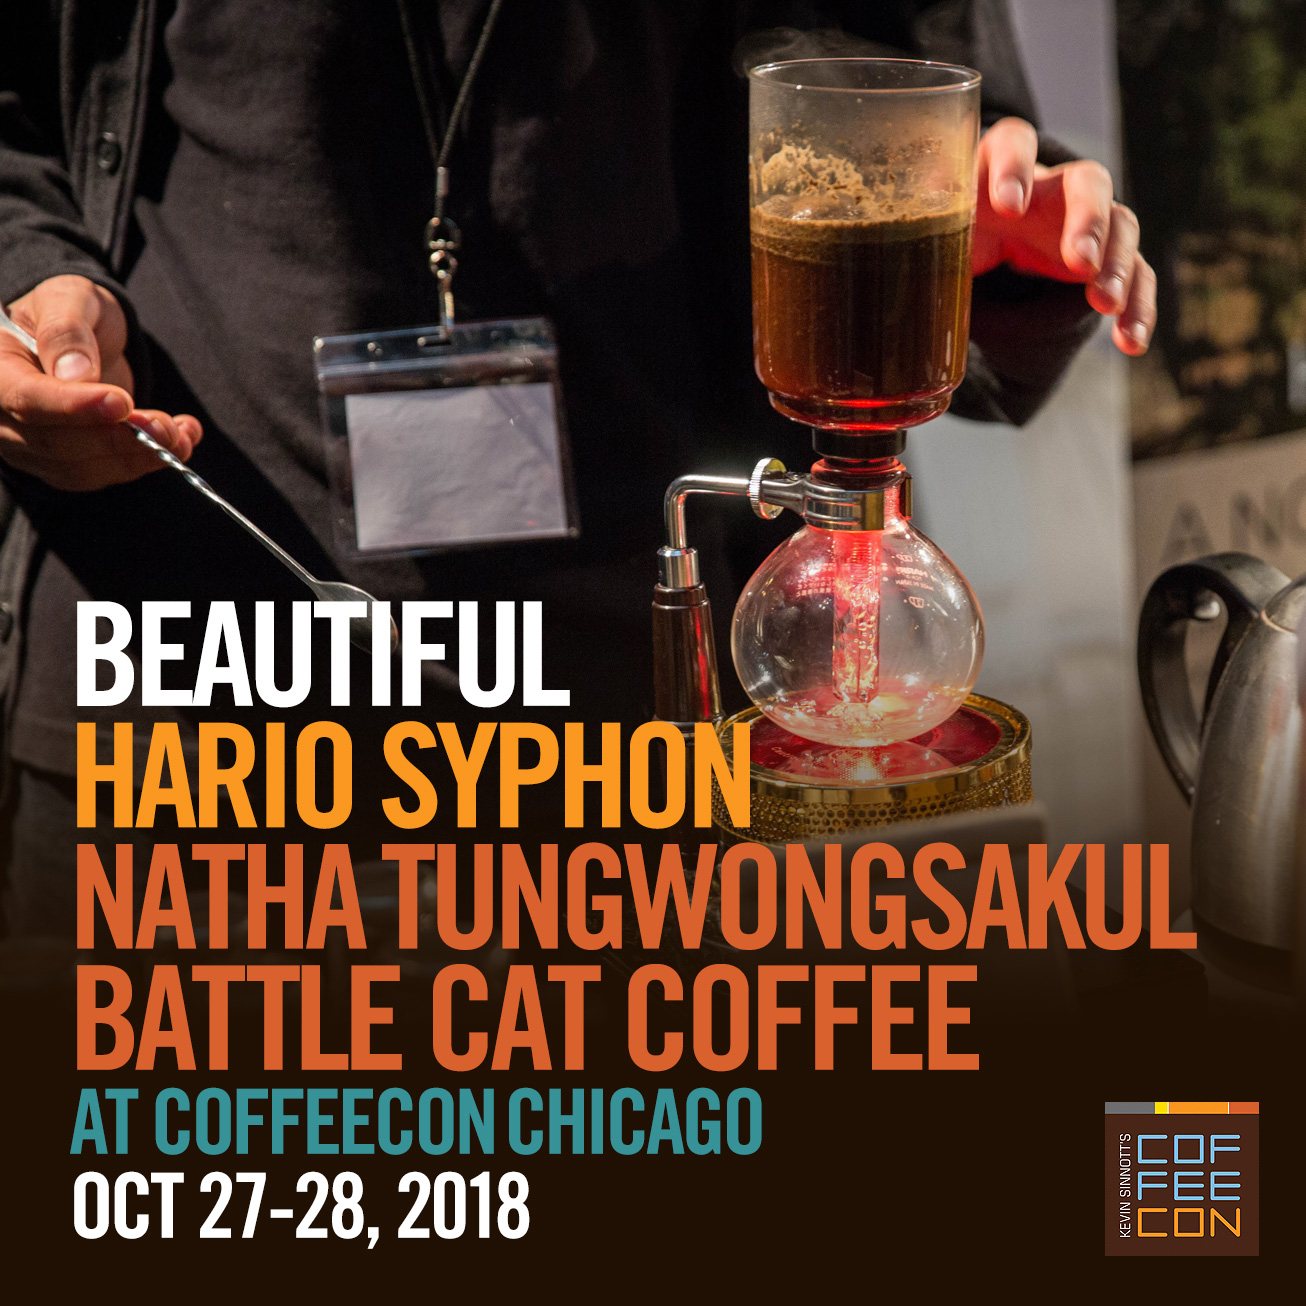 Hario Syphon with Battle Cat Coffee Coffee at CoffeeConChicago 2018